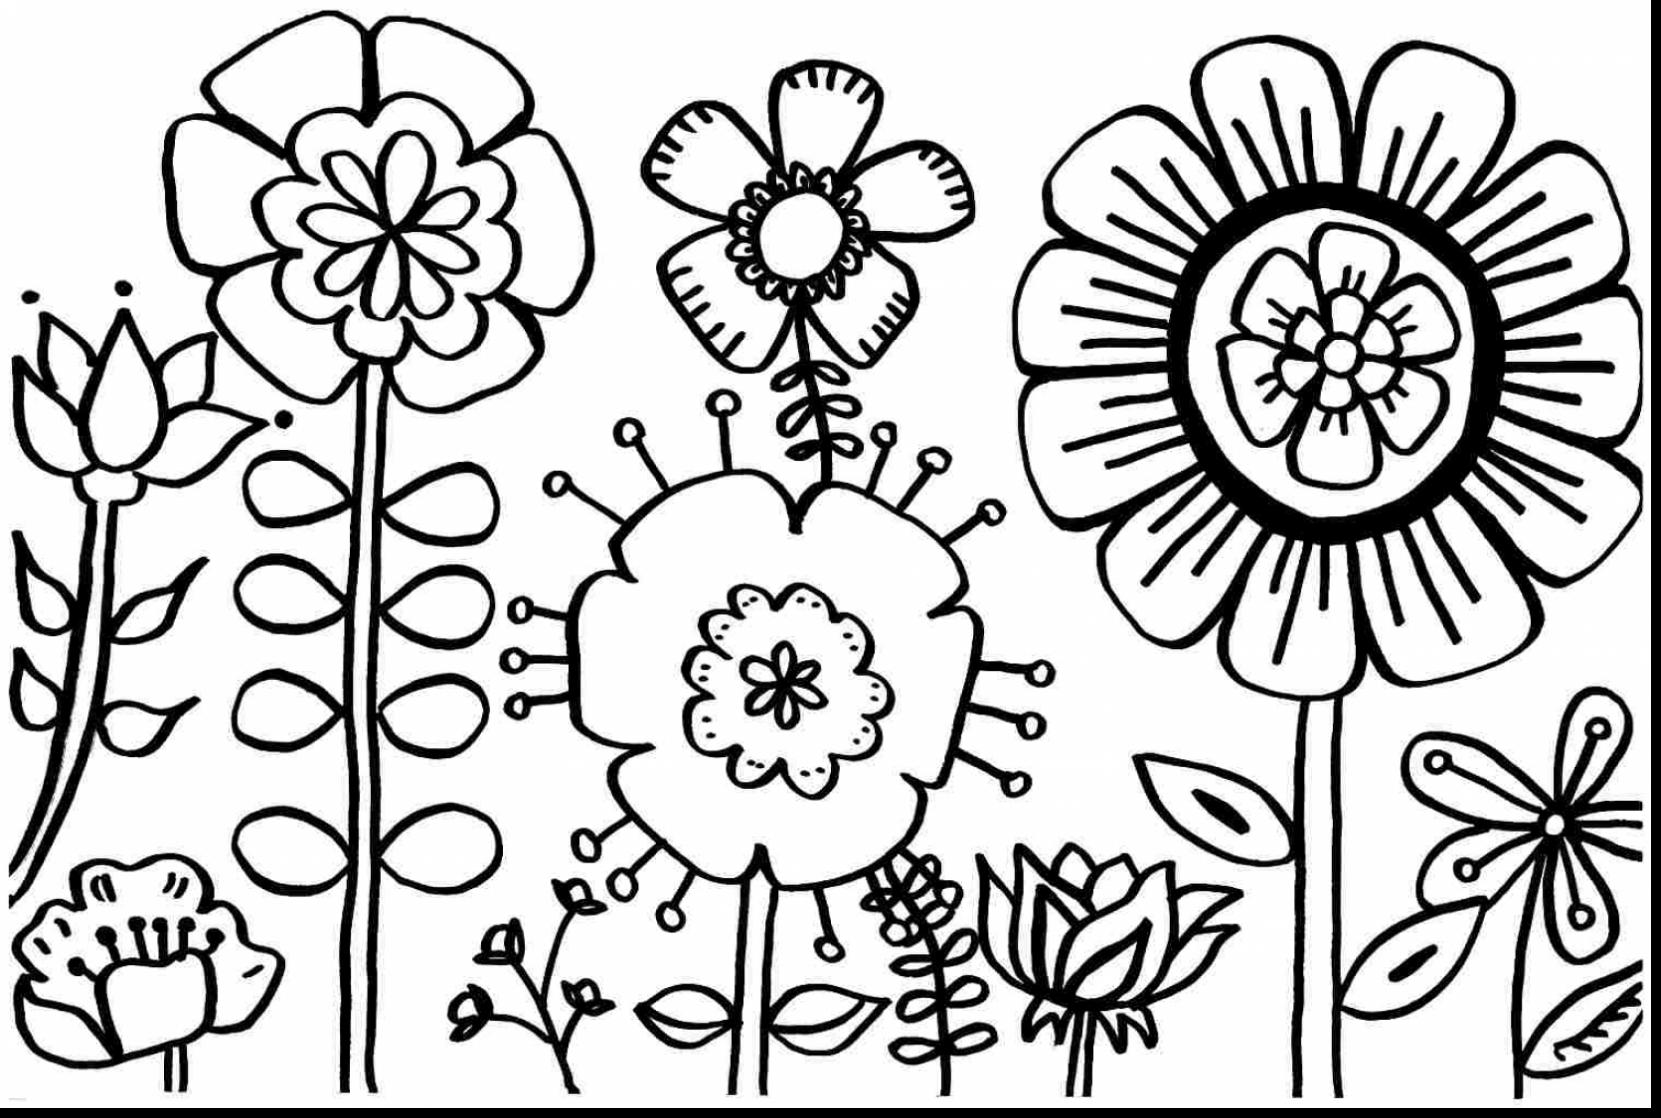 coloring flower clipart black and white simple flower outline clipart clipground flower white black clipart coloring and